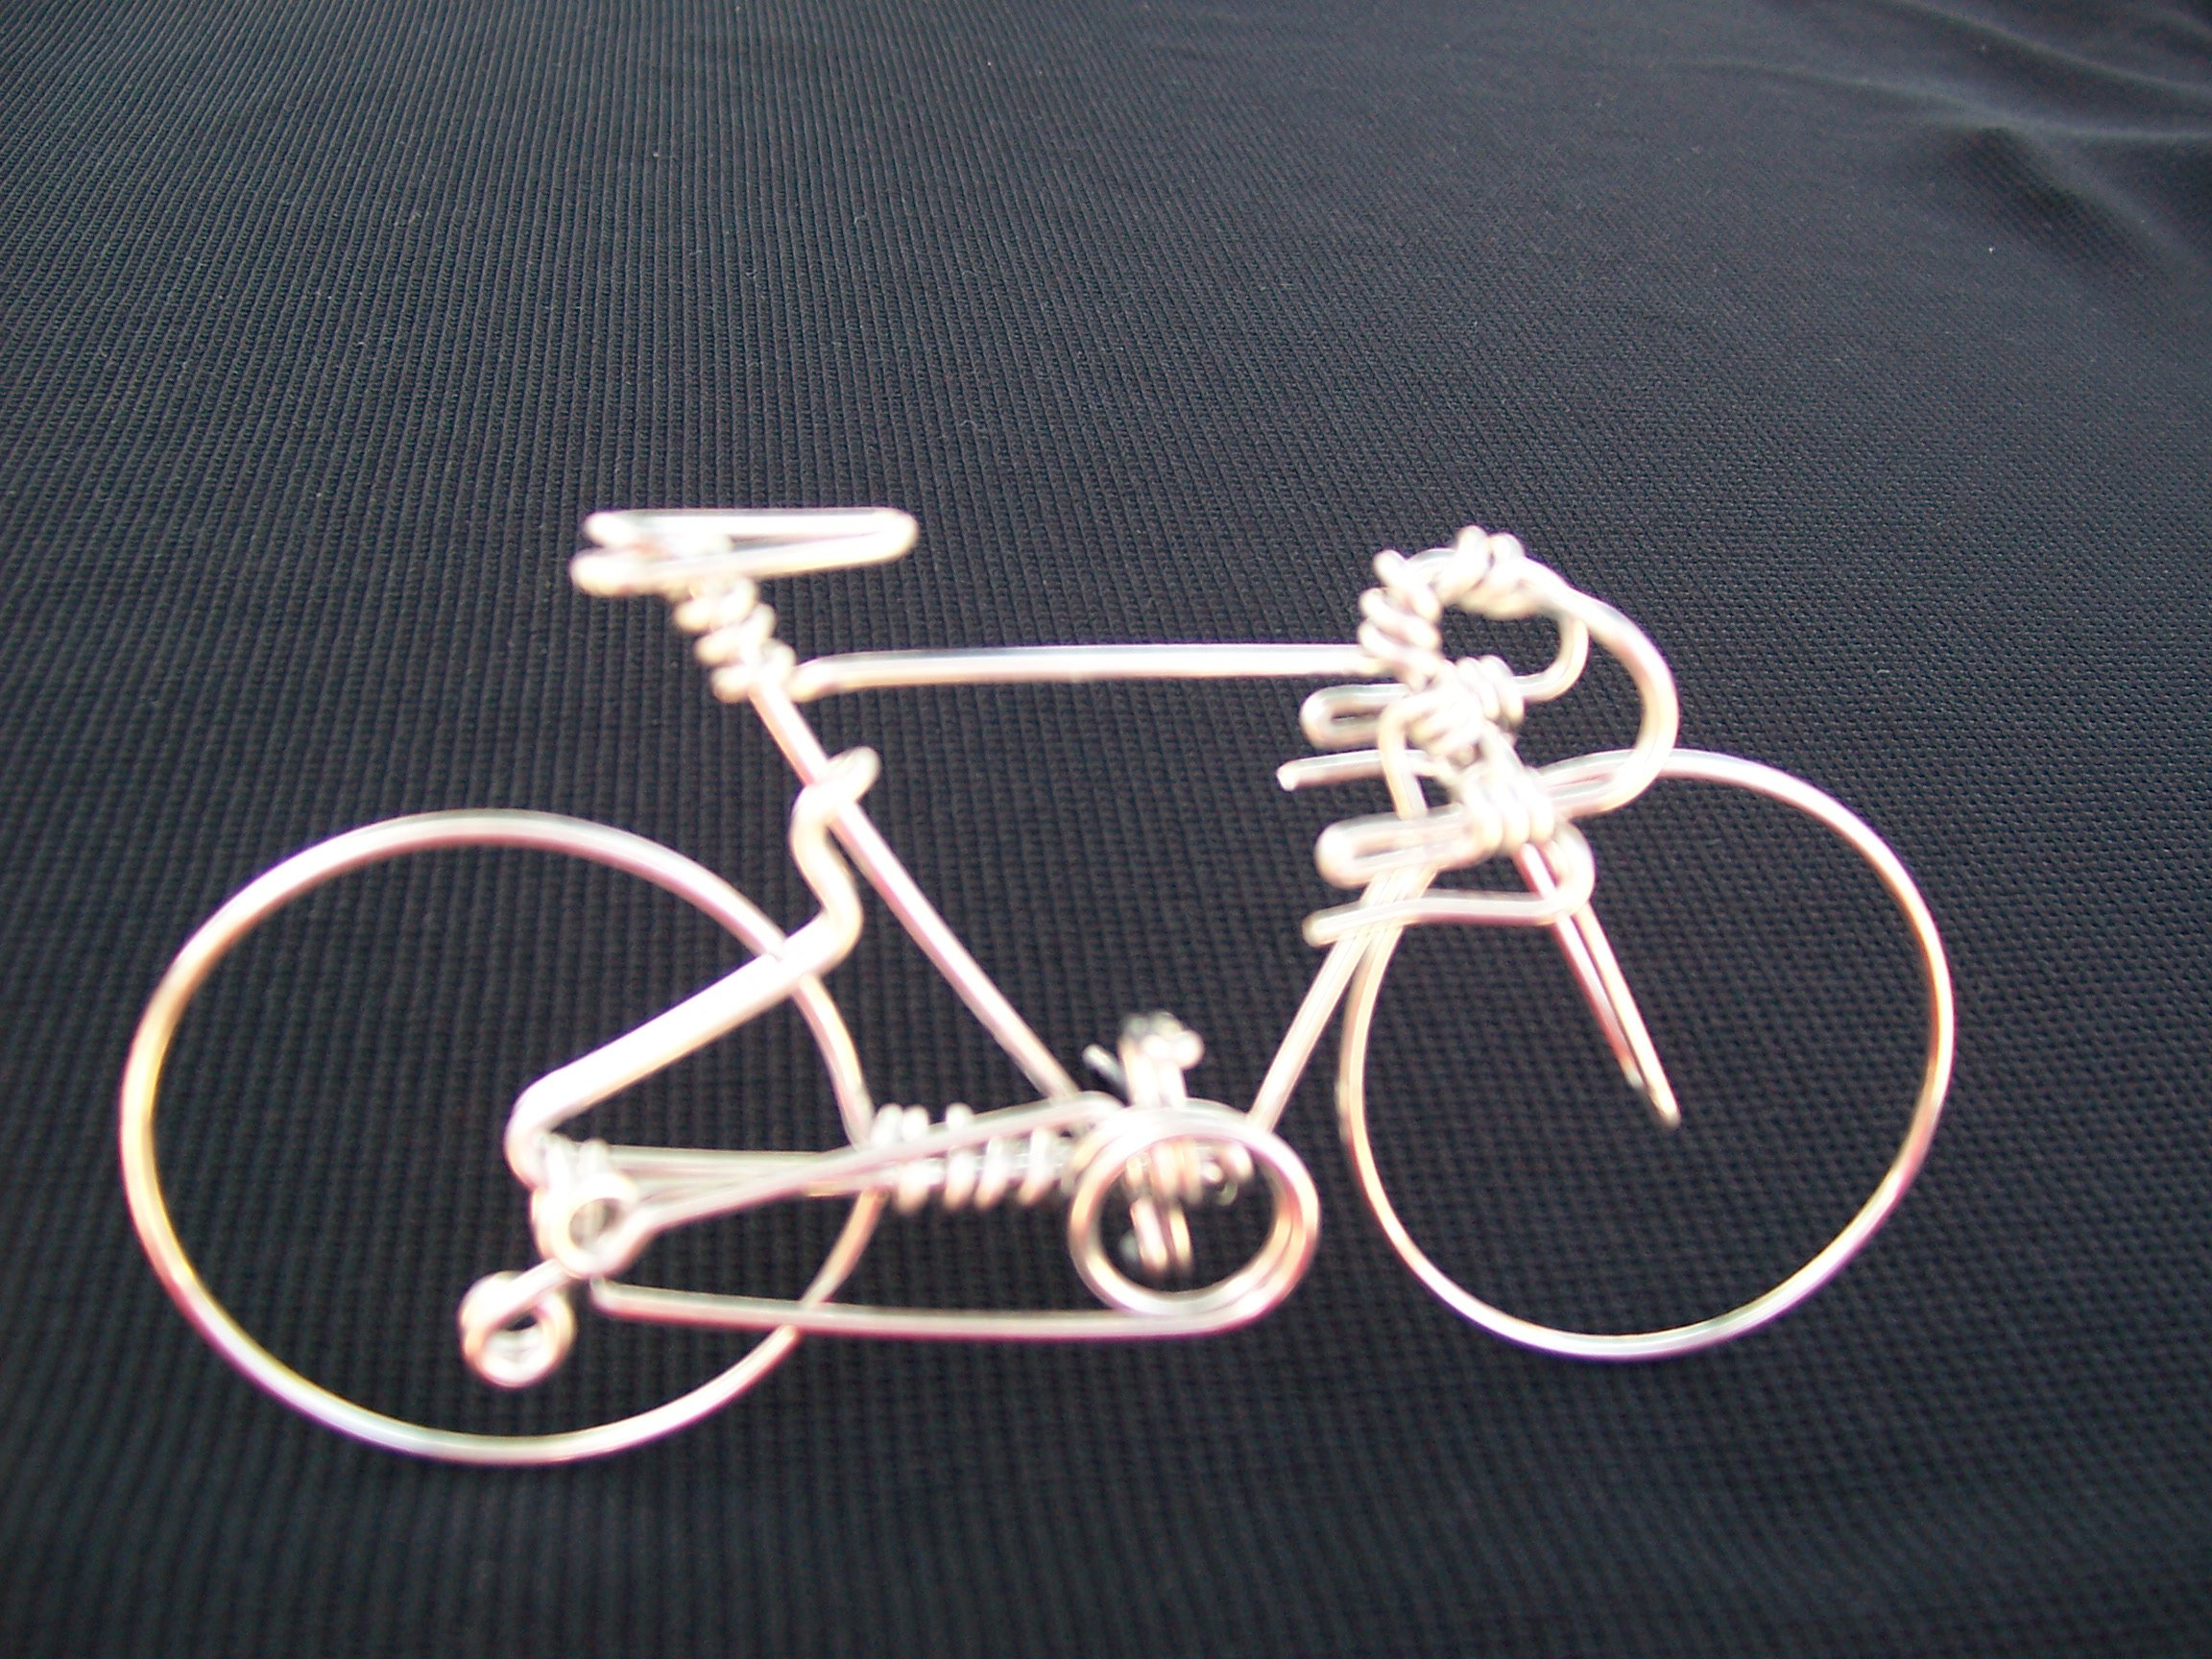 Handcrafted Mens Road Bike Small ~Unique Biking Birthday Gifts for Cyclists as Cake Toppers ~One Whole Aluminum Wire w/ No Single Break ~Metal Vintage Bicycle Art Decor as Cycling Biker Gifts for Him